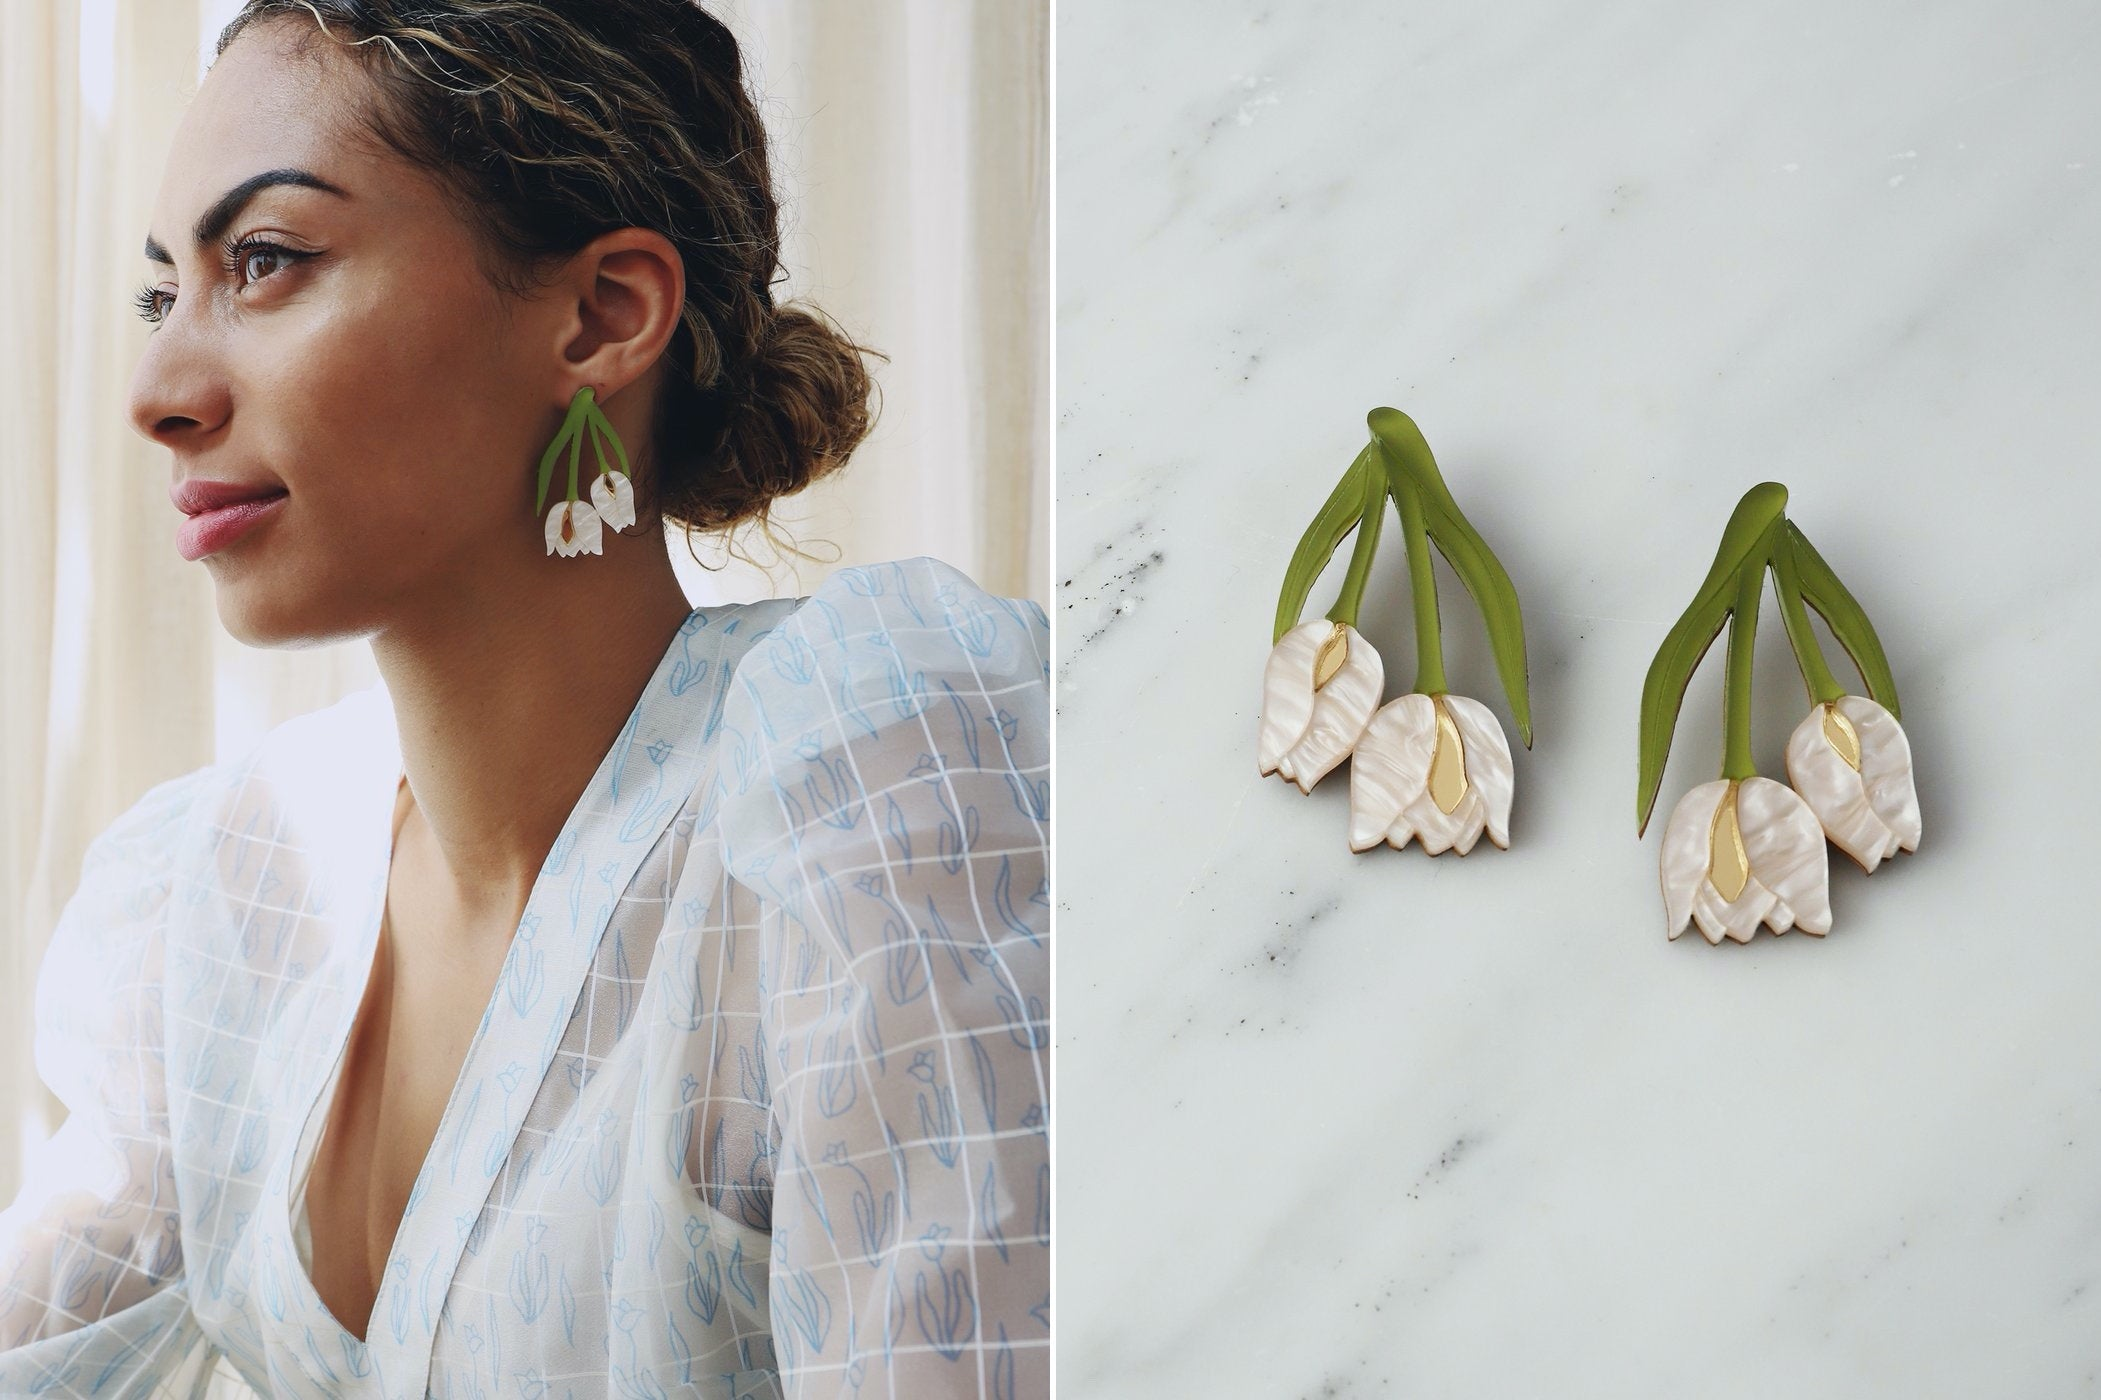 Side by side images of the same set of earrings shot two ways: lifestyle on a model, and product on a clean background